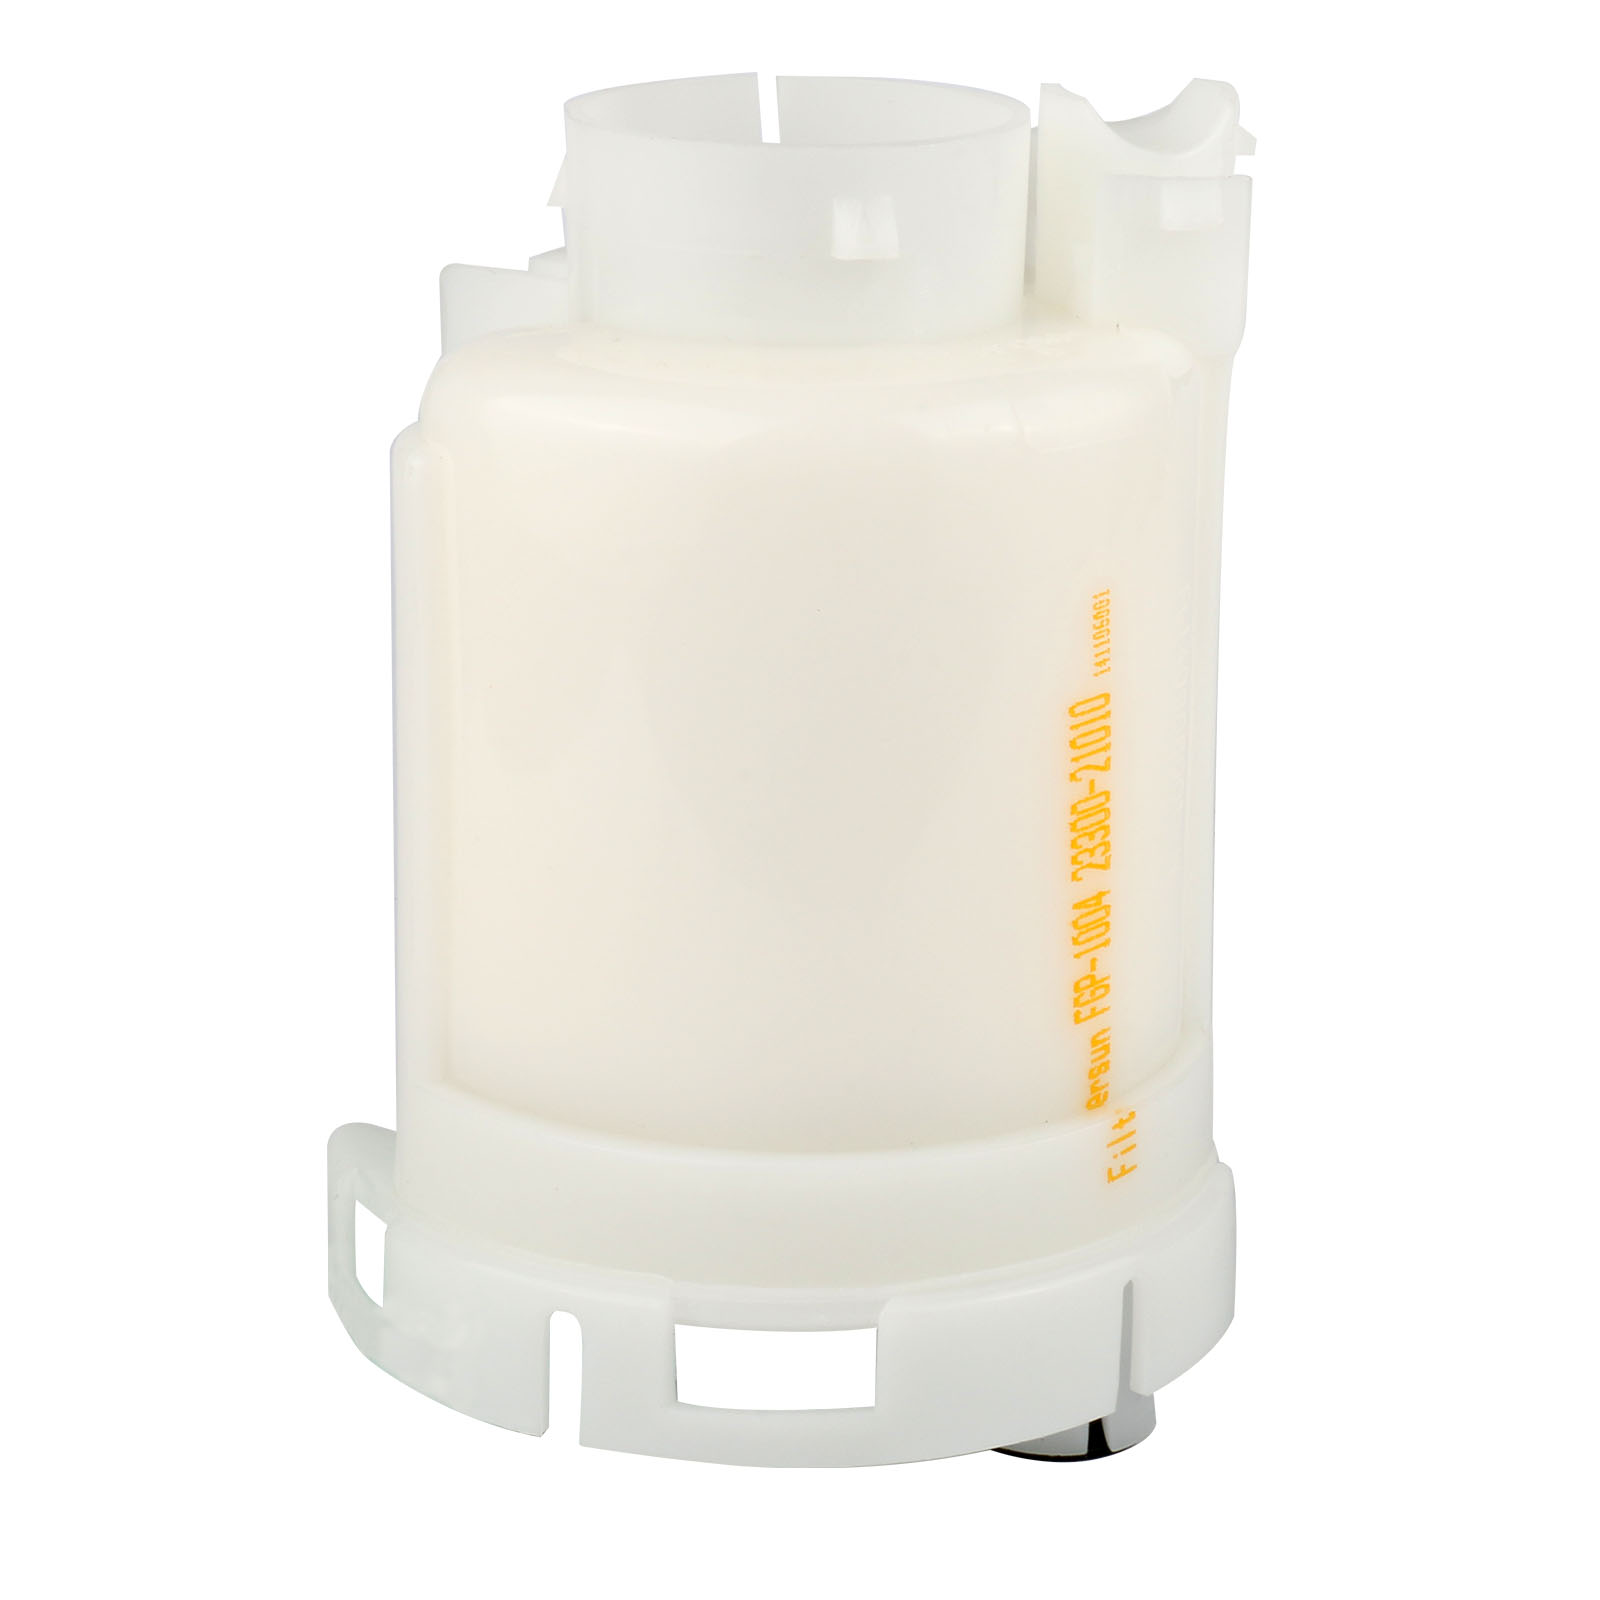 medium resolution of car gas gasoline petrol fuel filter oe 23300 21010 23300 0d030replacement parts for